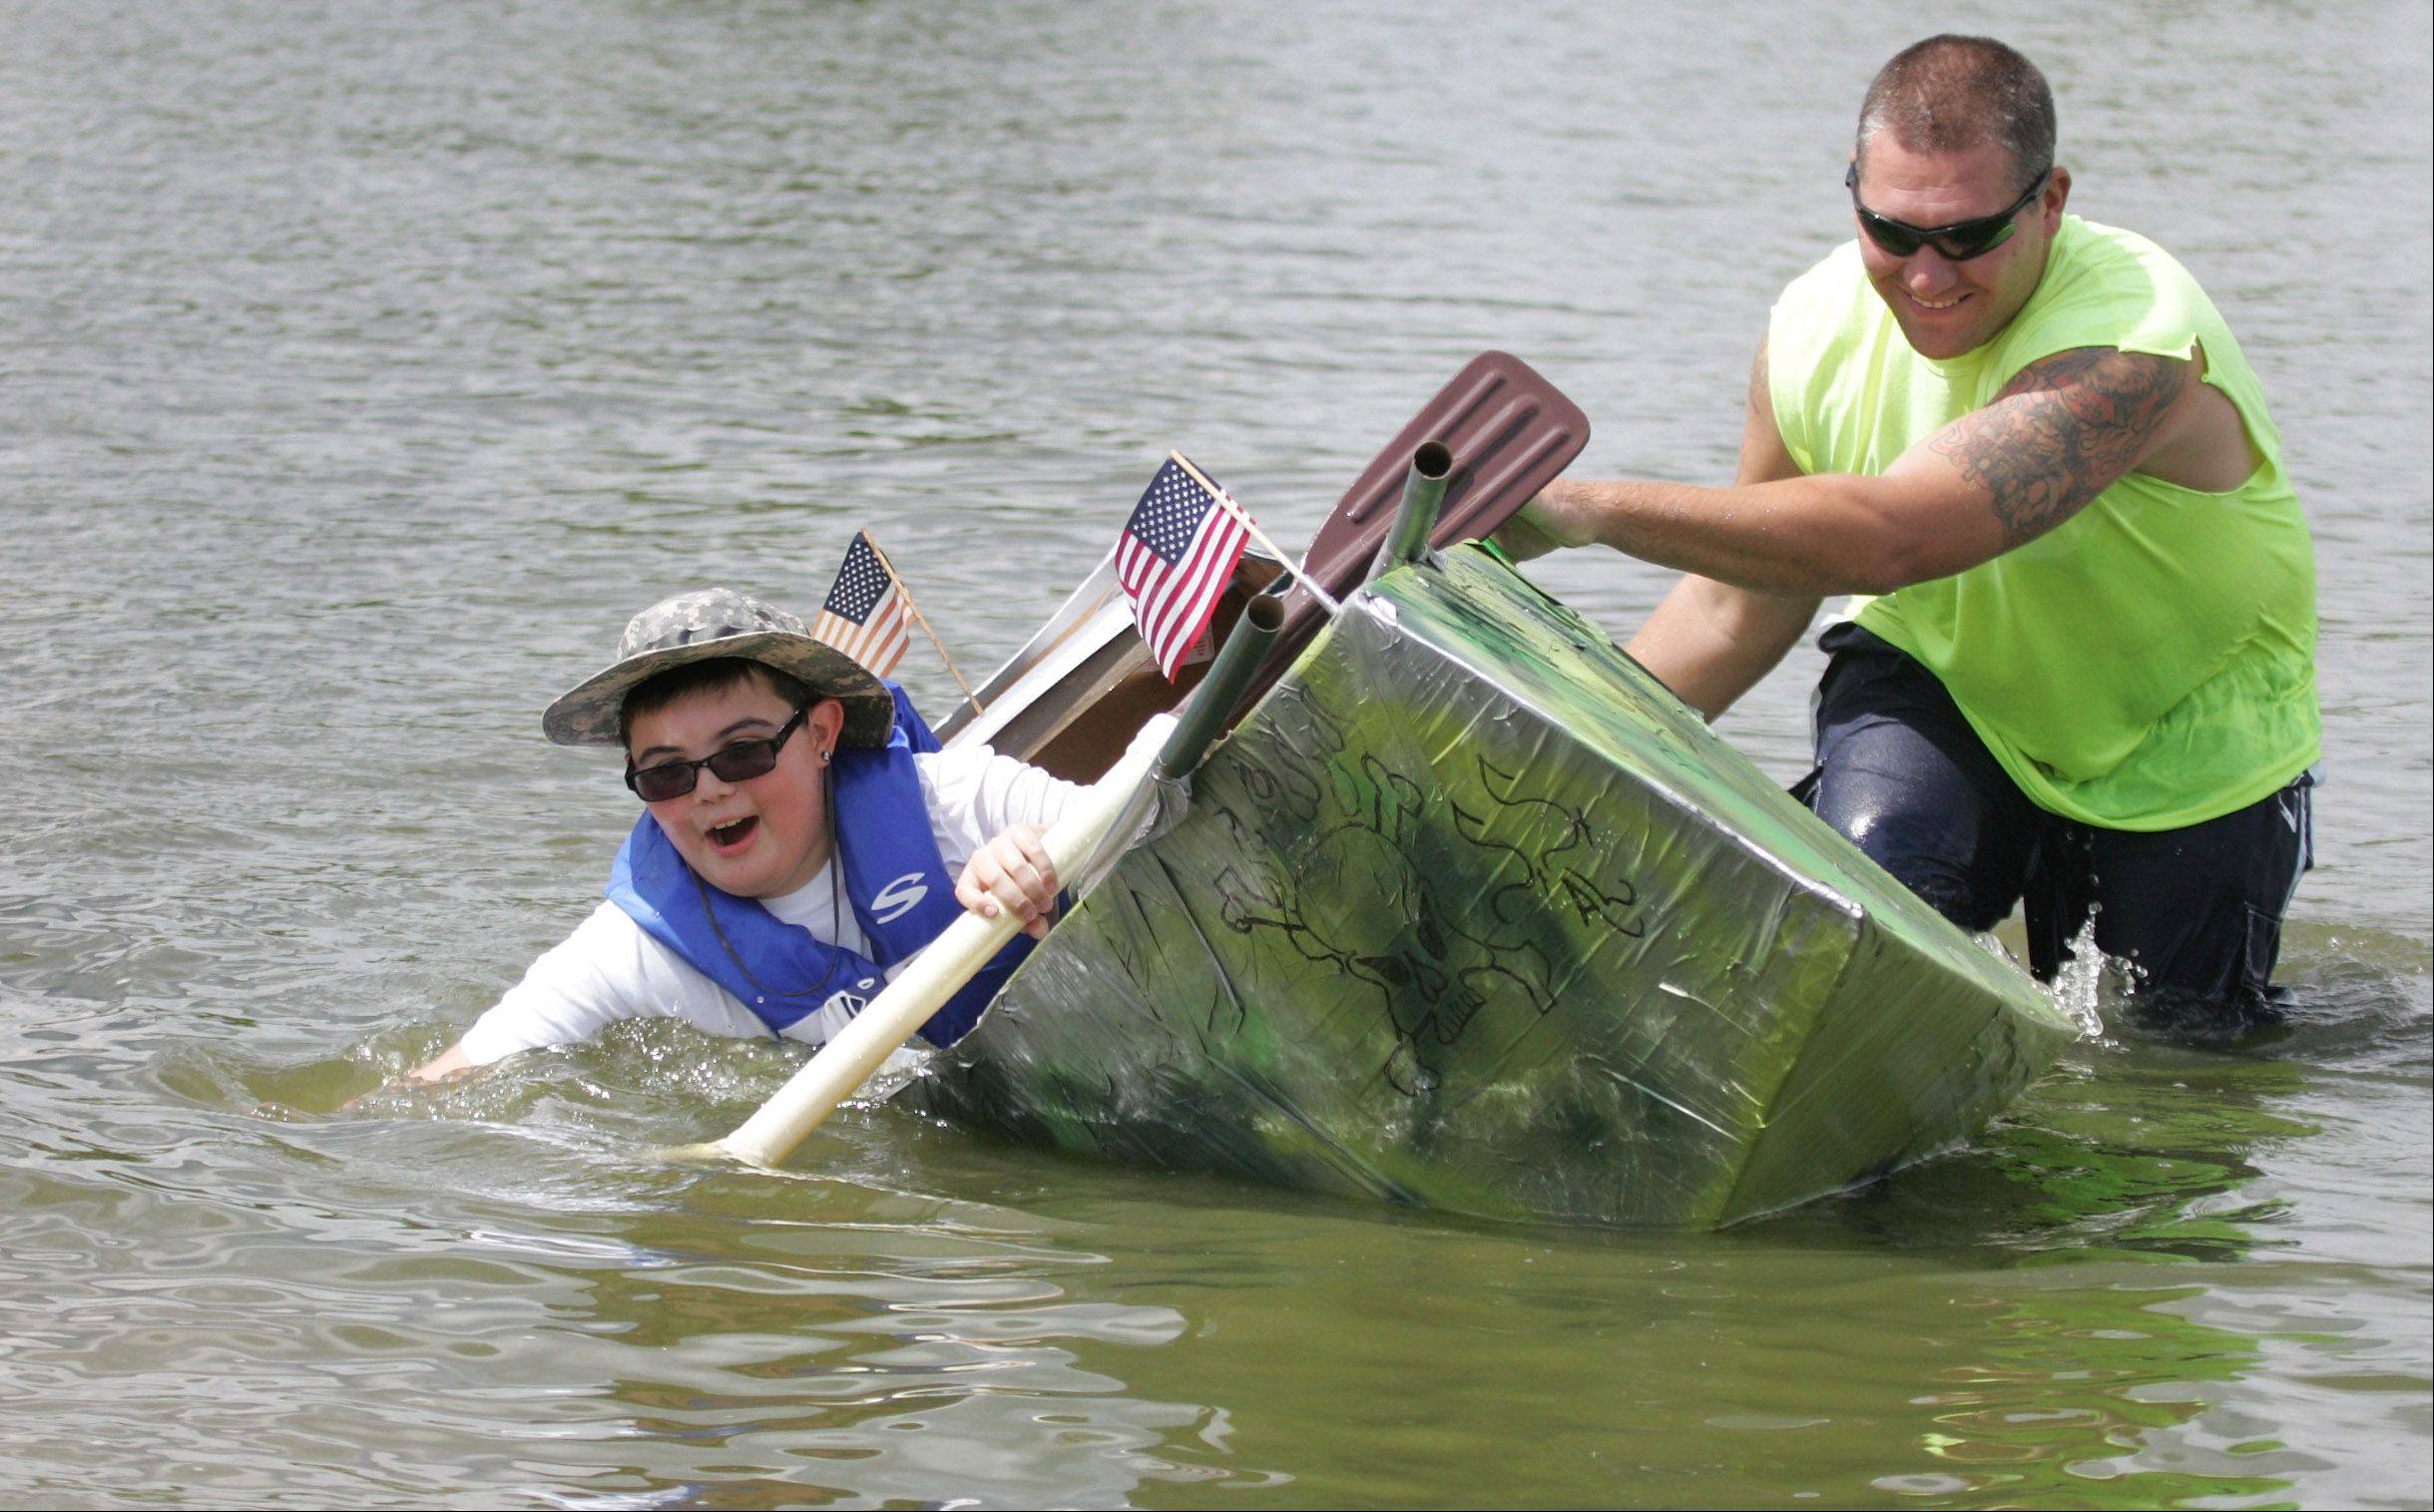 Alex Masterton, 12, quickly sinks in his boat as Fox Lake firefighter Dana Magness tries to help during the annual Cardboard Cup Regatta Sunday at Lakefront Park sponsored by the Village of Fox Lake Parks and Recreation Department. Contestants built boats made strictly of cardboard, duct tape and paint and raced for medals and trophies.